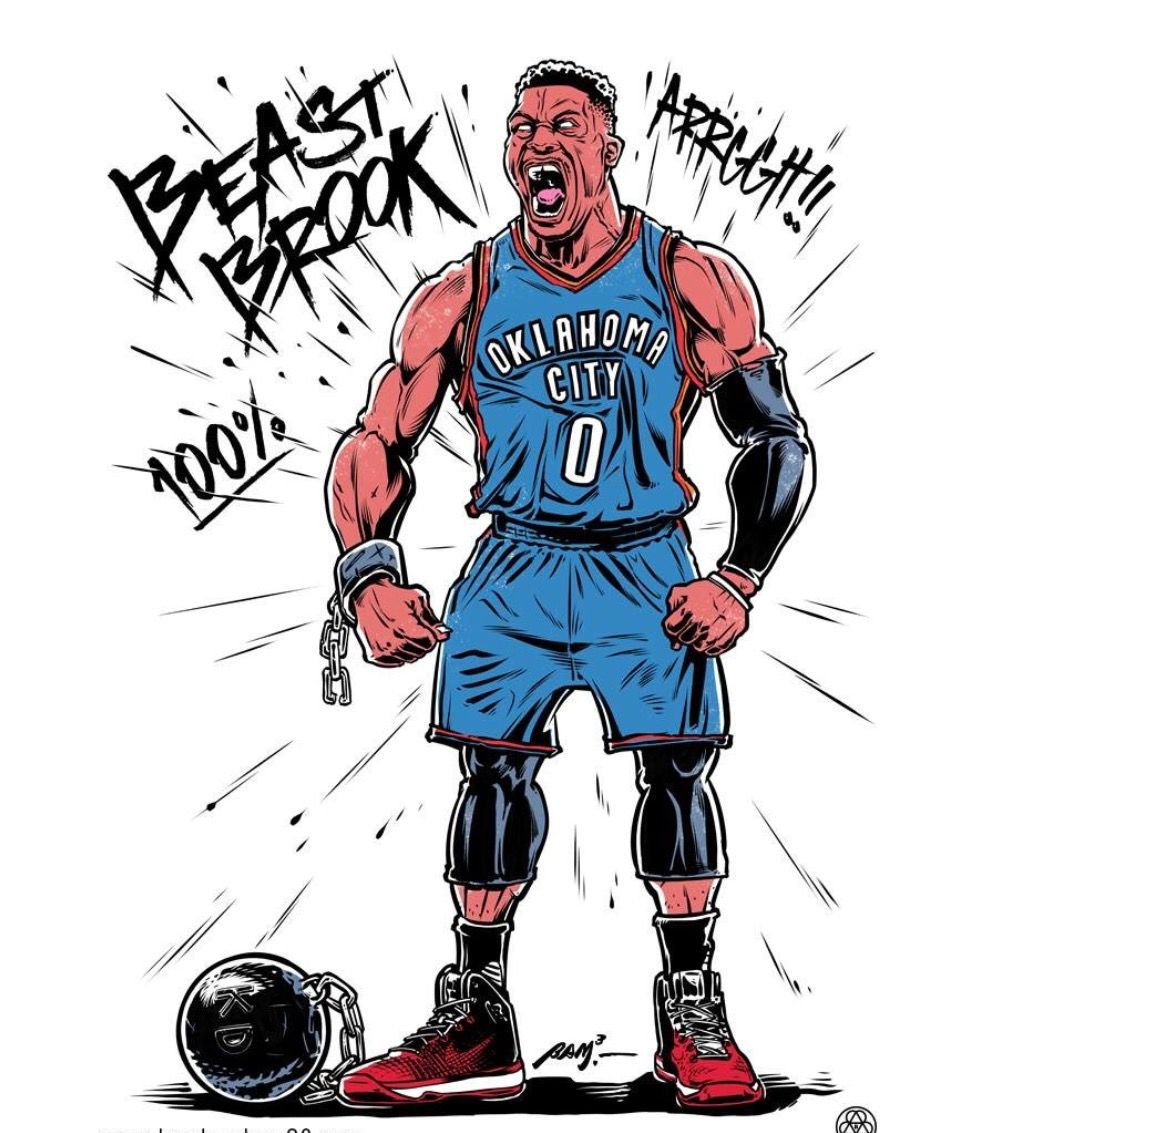 Cool Basketball Wallpapers: Pin By J.Breezy🏀 On Westbrook My Fav Player